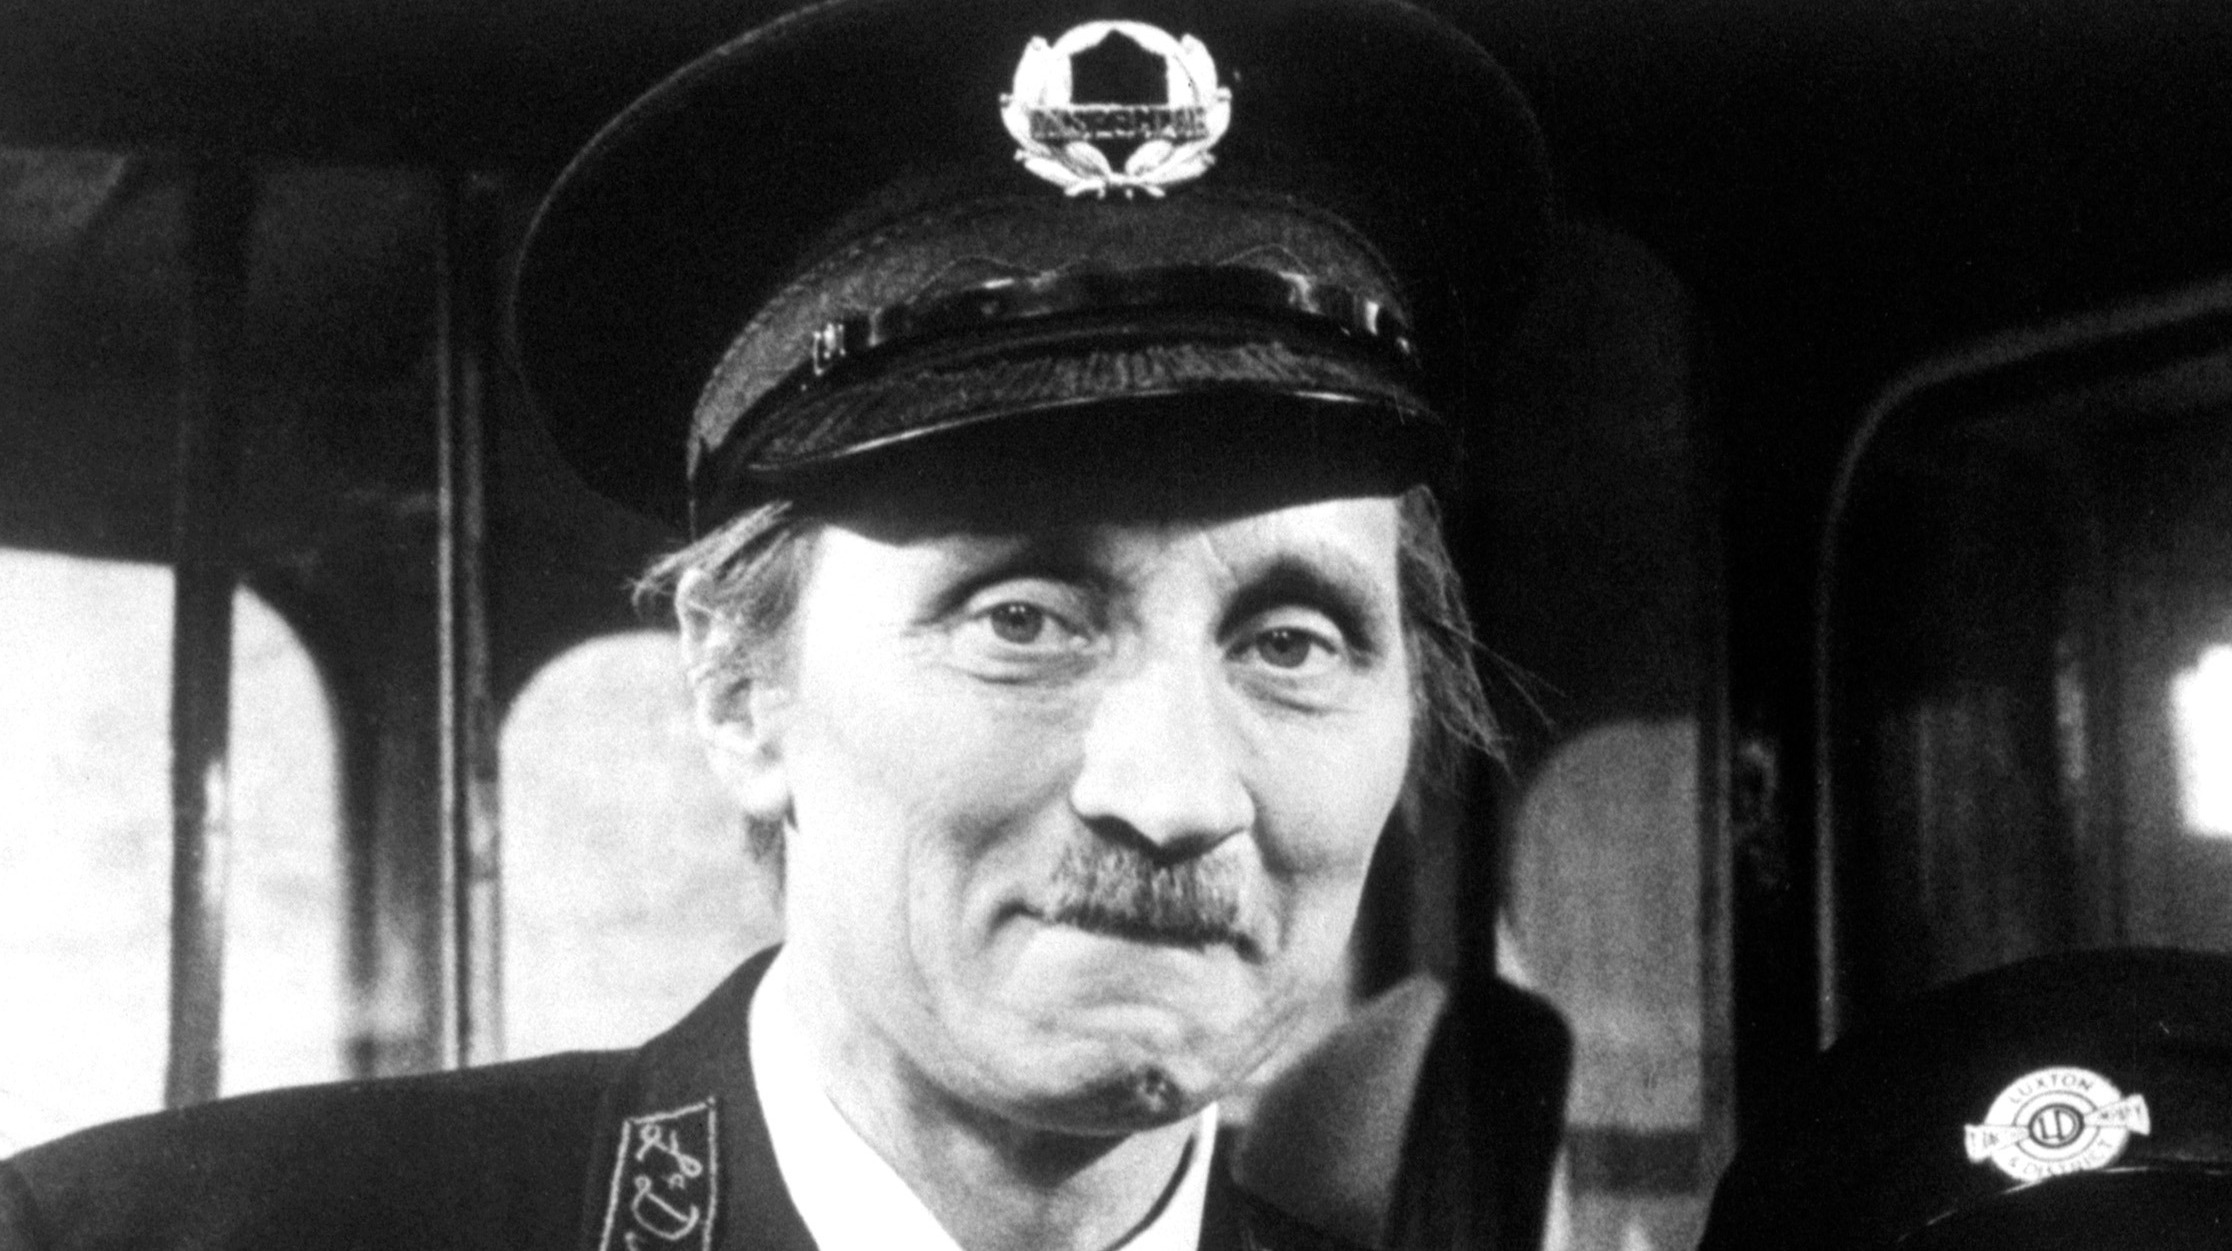 Best Utv For The Money >> Family, friends and fans say goodbye to On The Buses actor Stephen Lewis as funeral held - ITV News